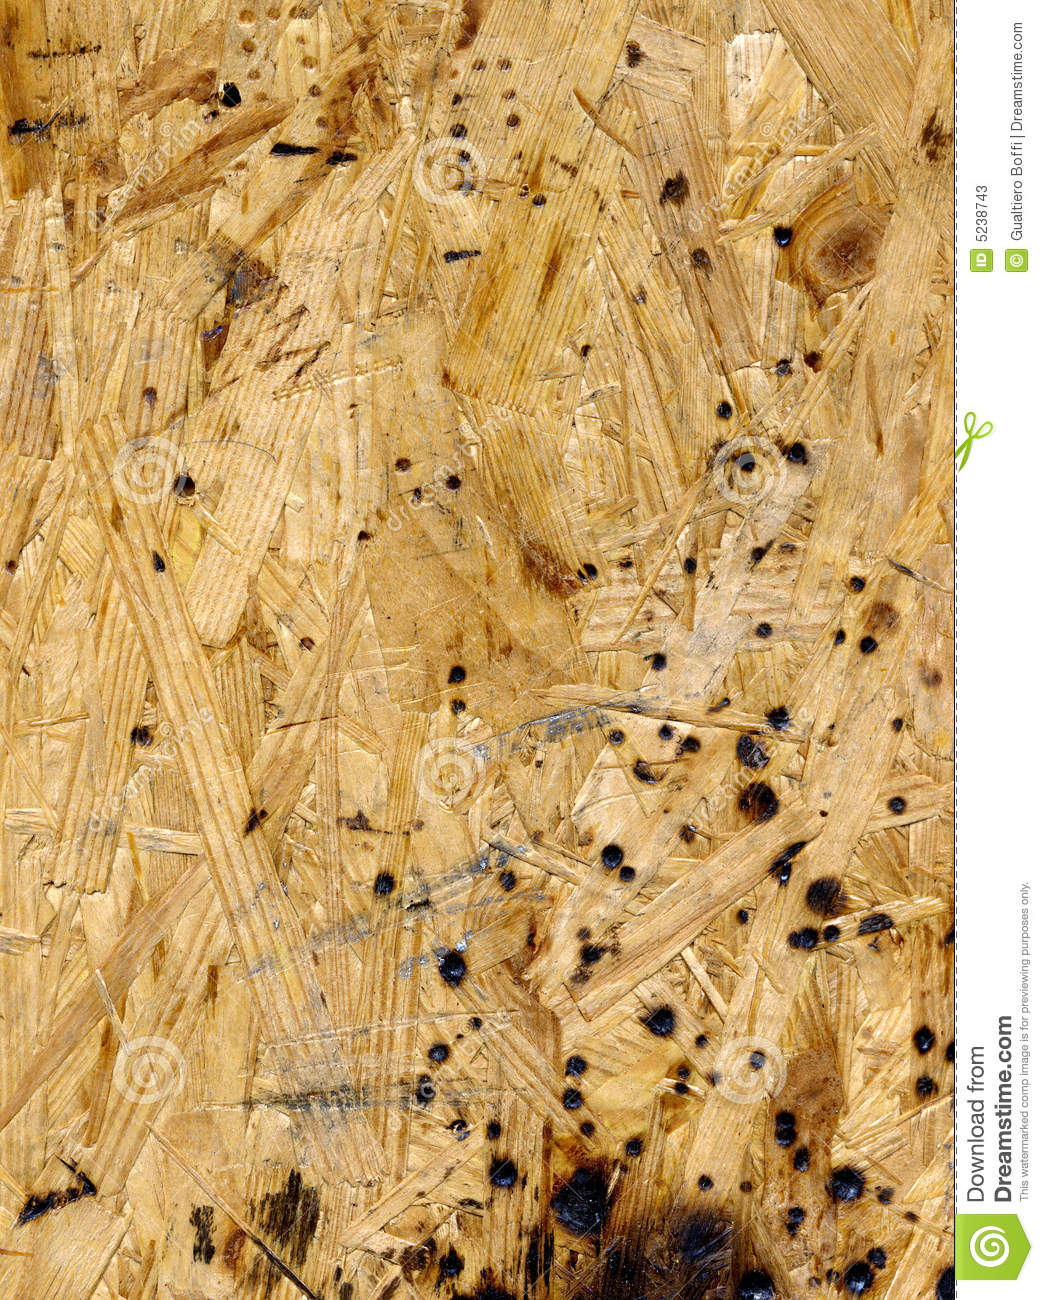 Related to 220+ Beautiful High Resolution Wood Texture Collection